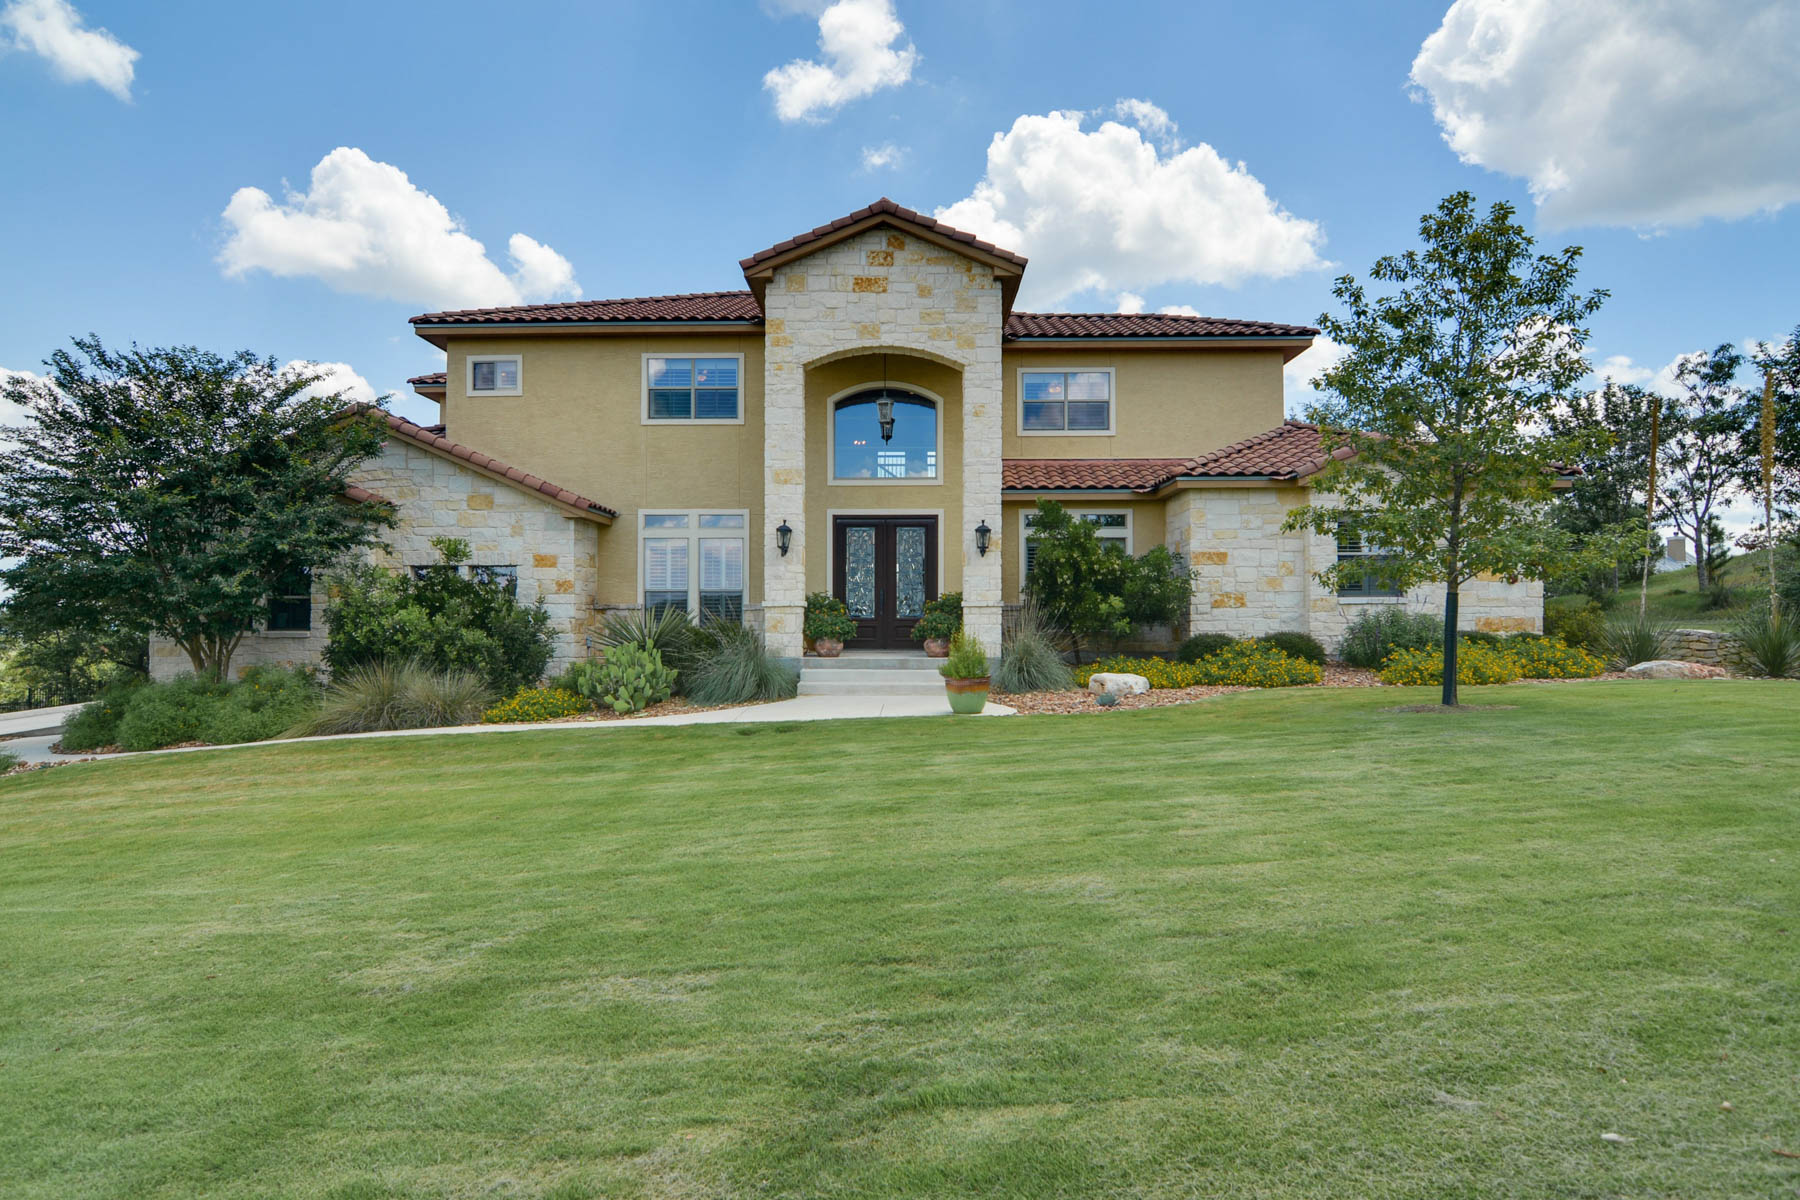 Single Family Home for Sale at Spectacular Home in Spring Branch 212 Fossil Hills Loop Spring Branch, Texas 78070 United States